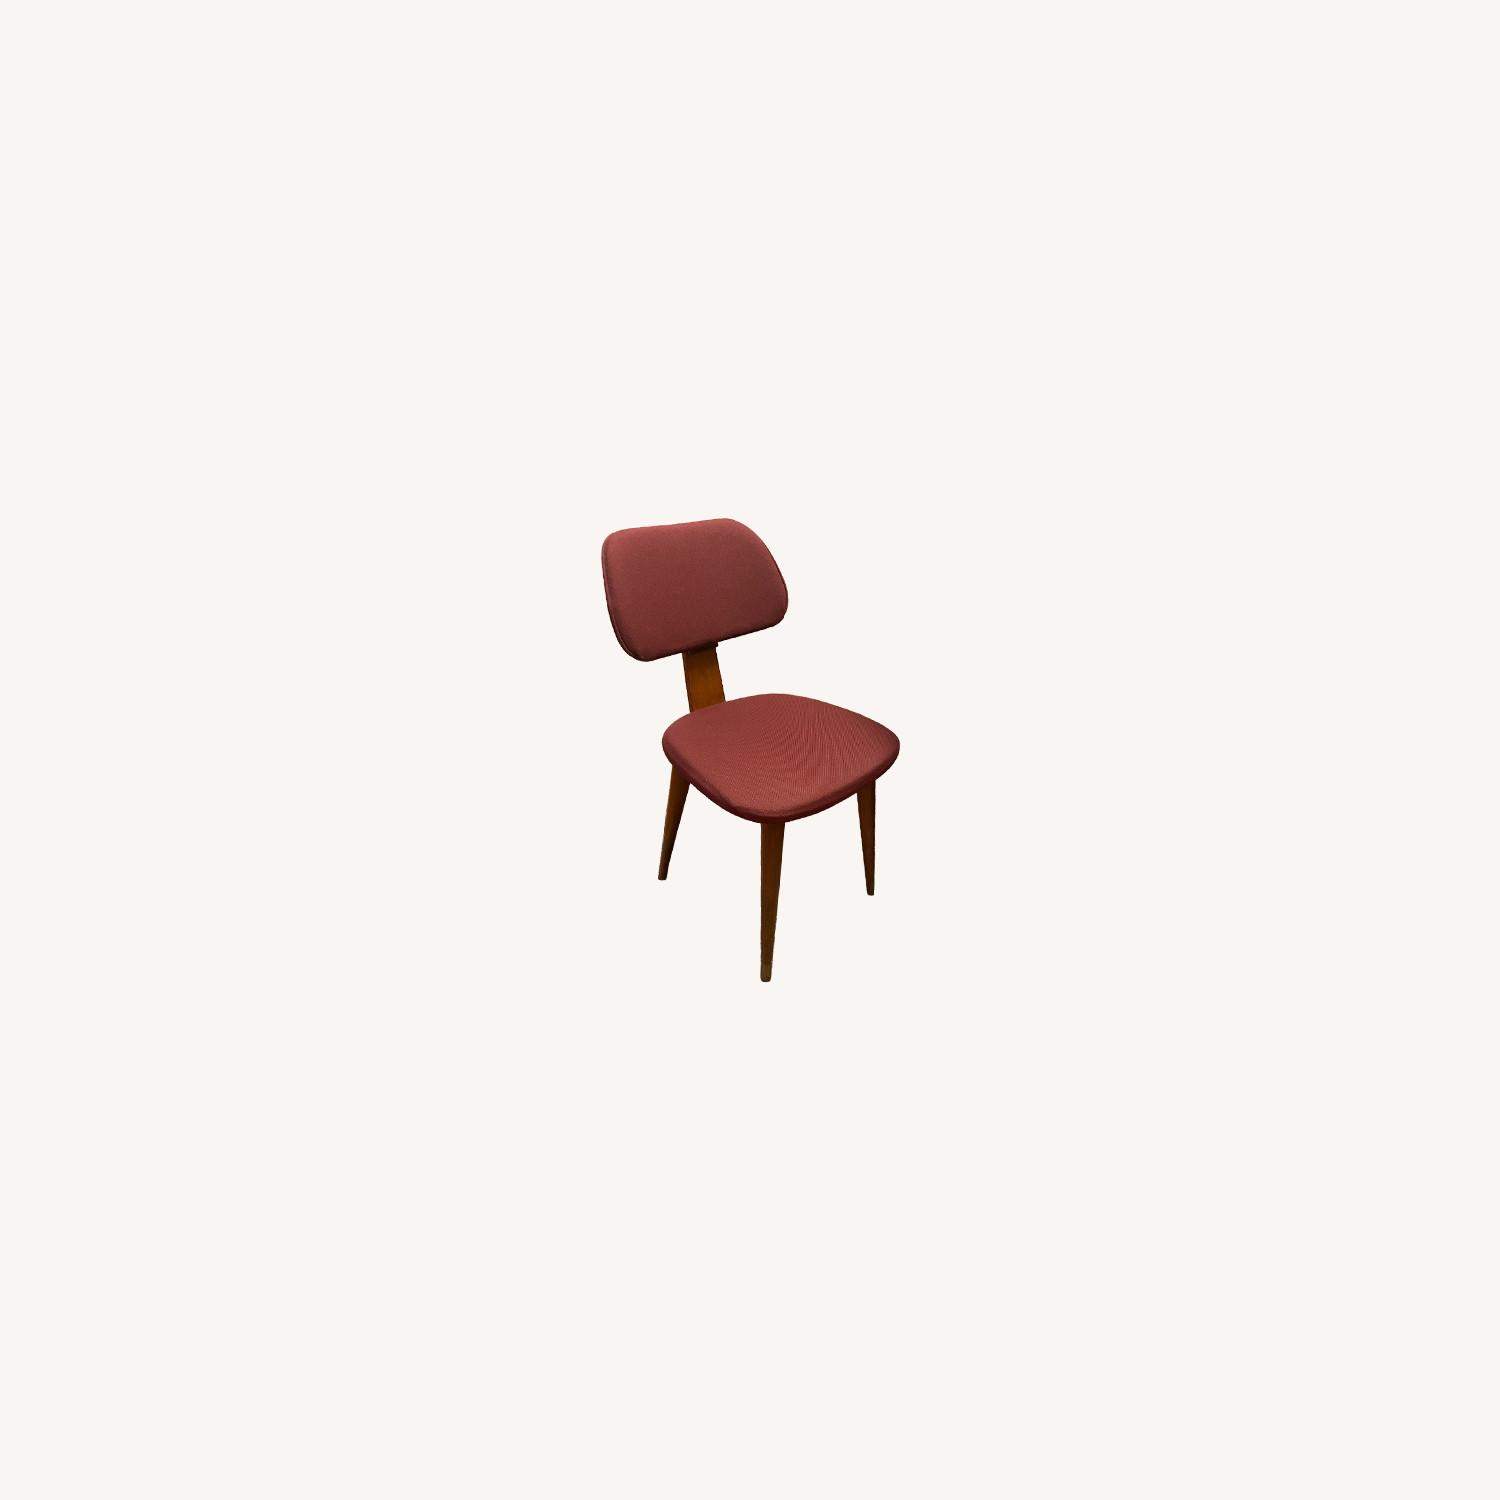 Midcentury Dining Chairs - image-0